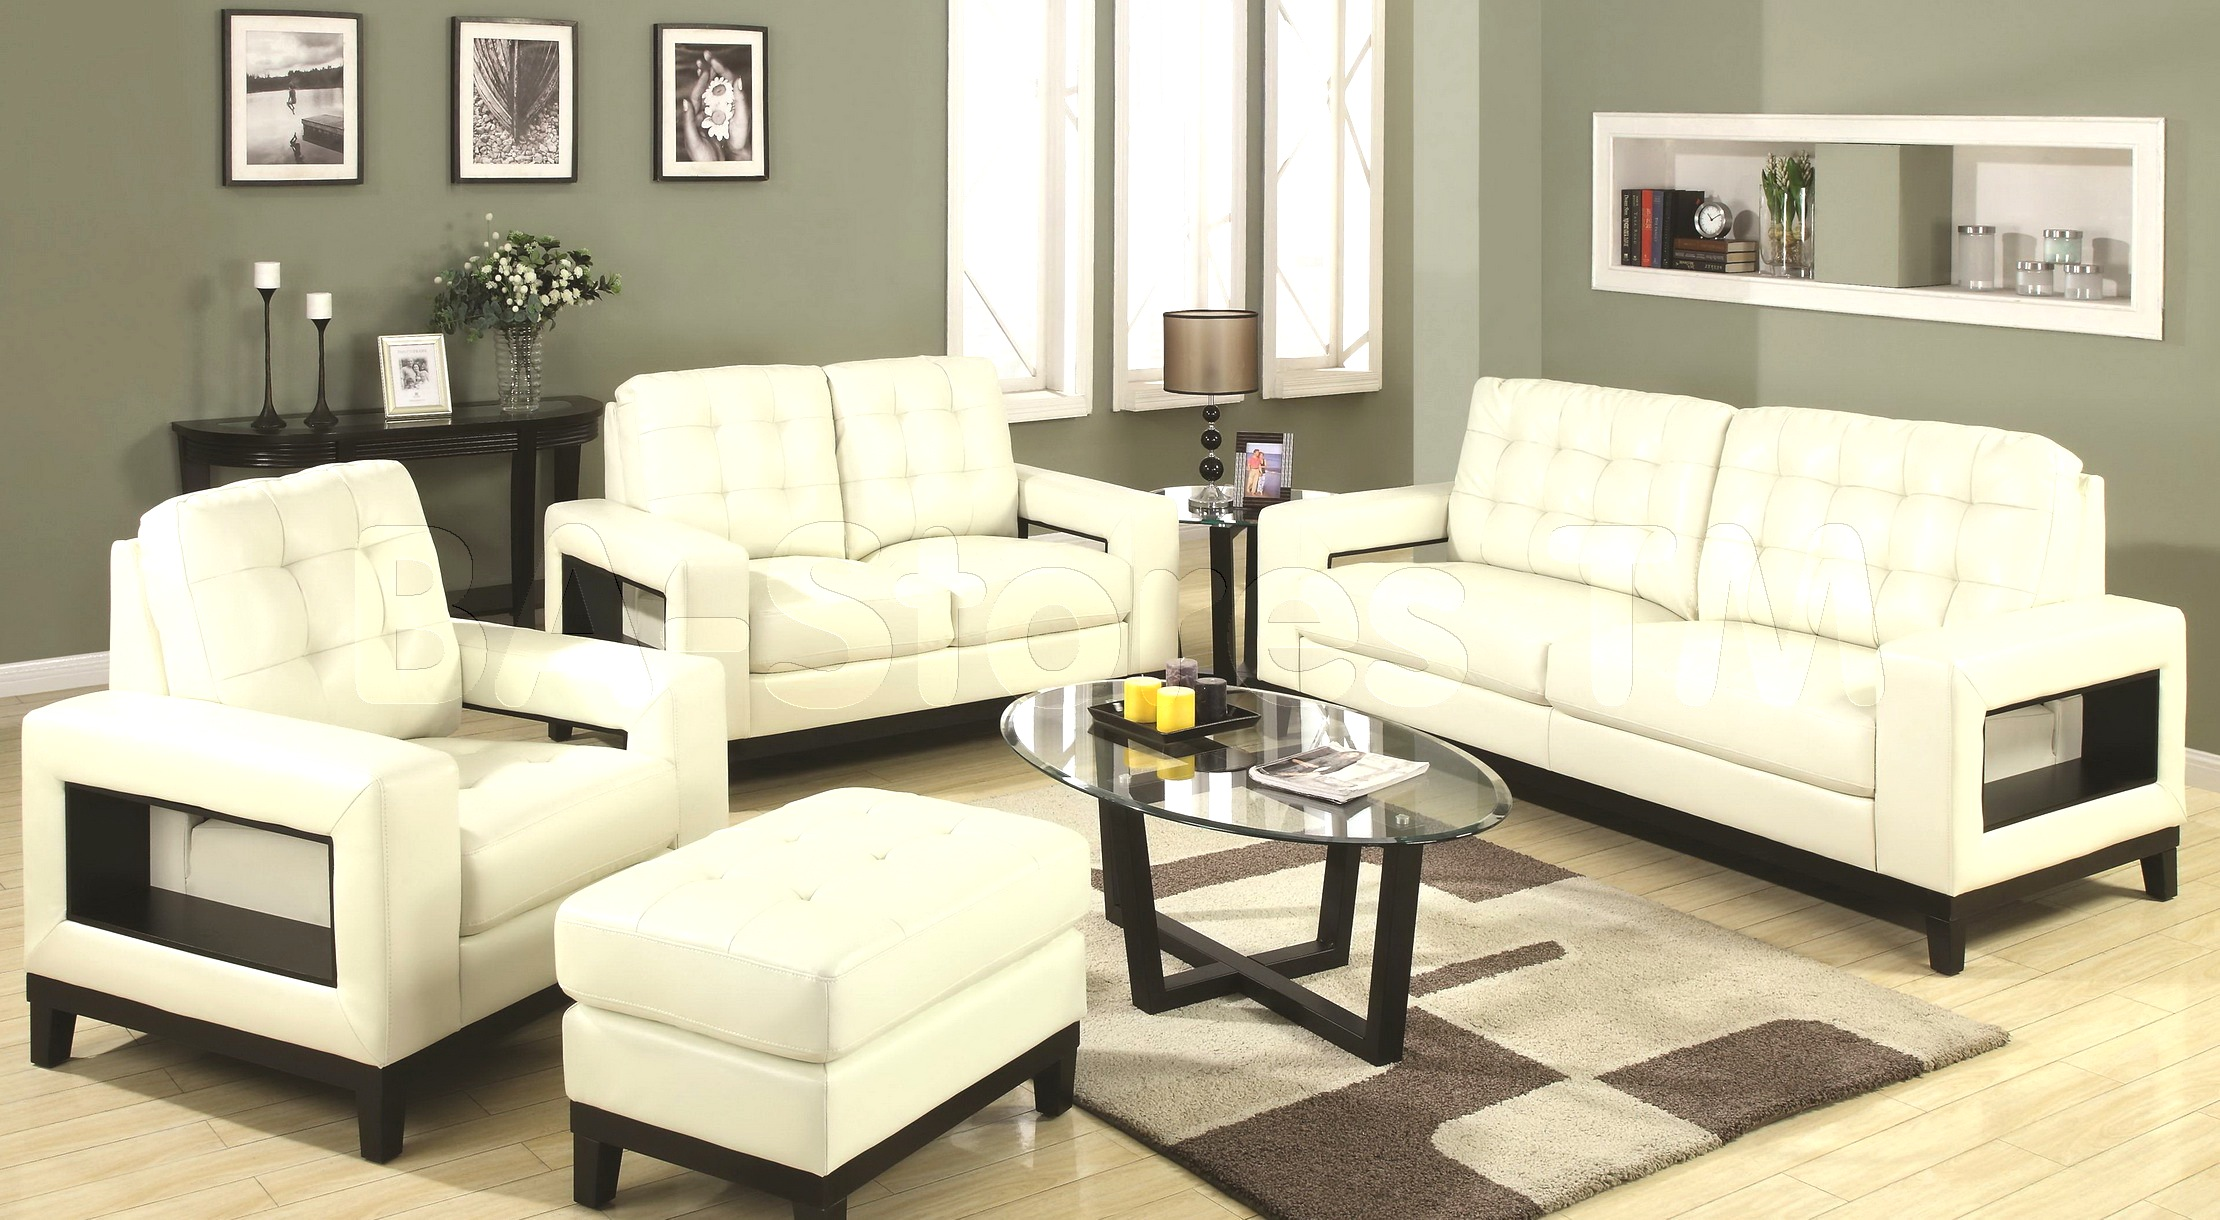 Sofa set designs home design for White living room furniture ideas